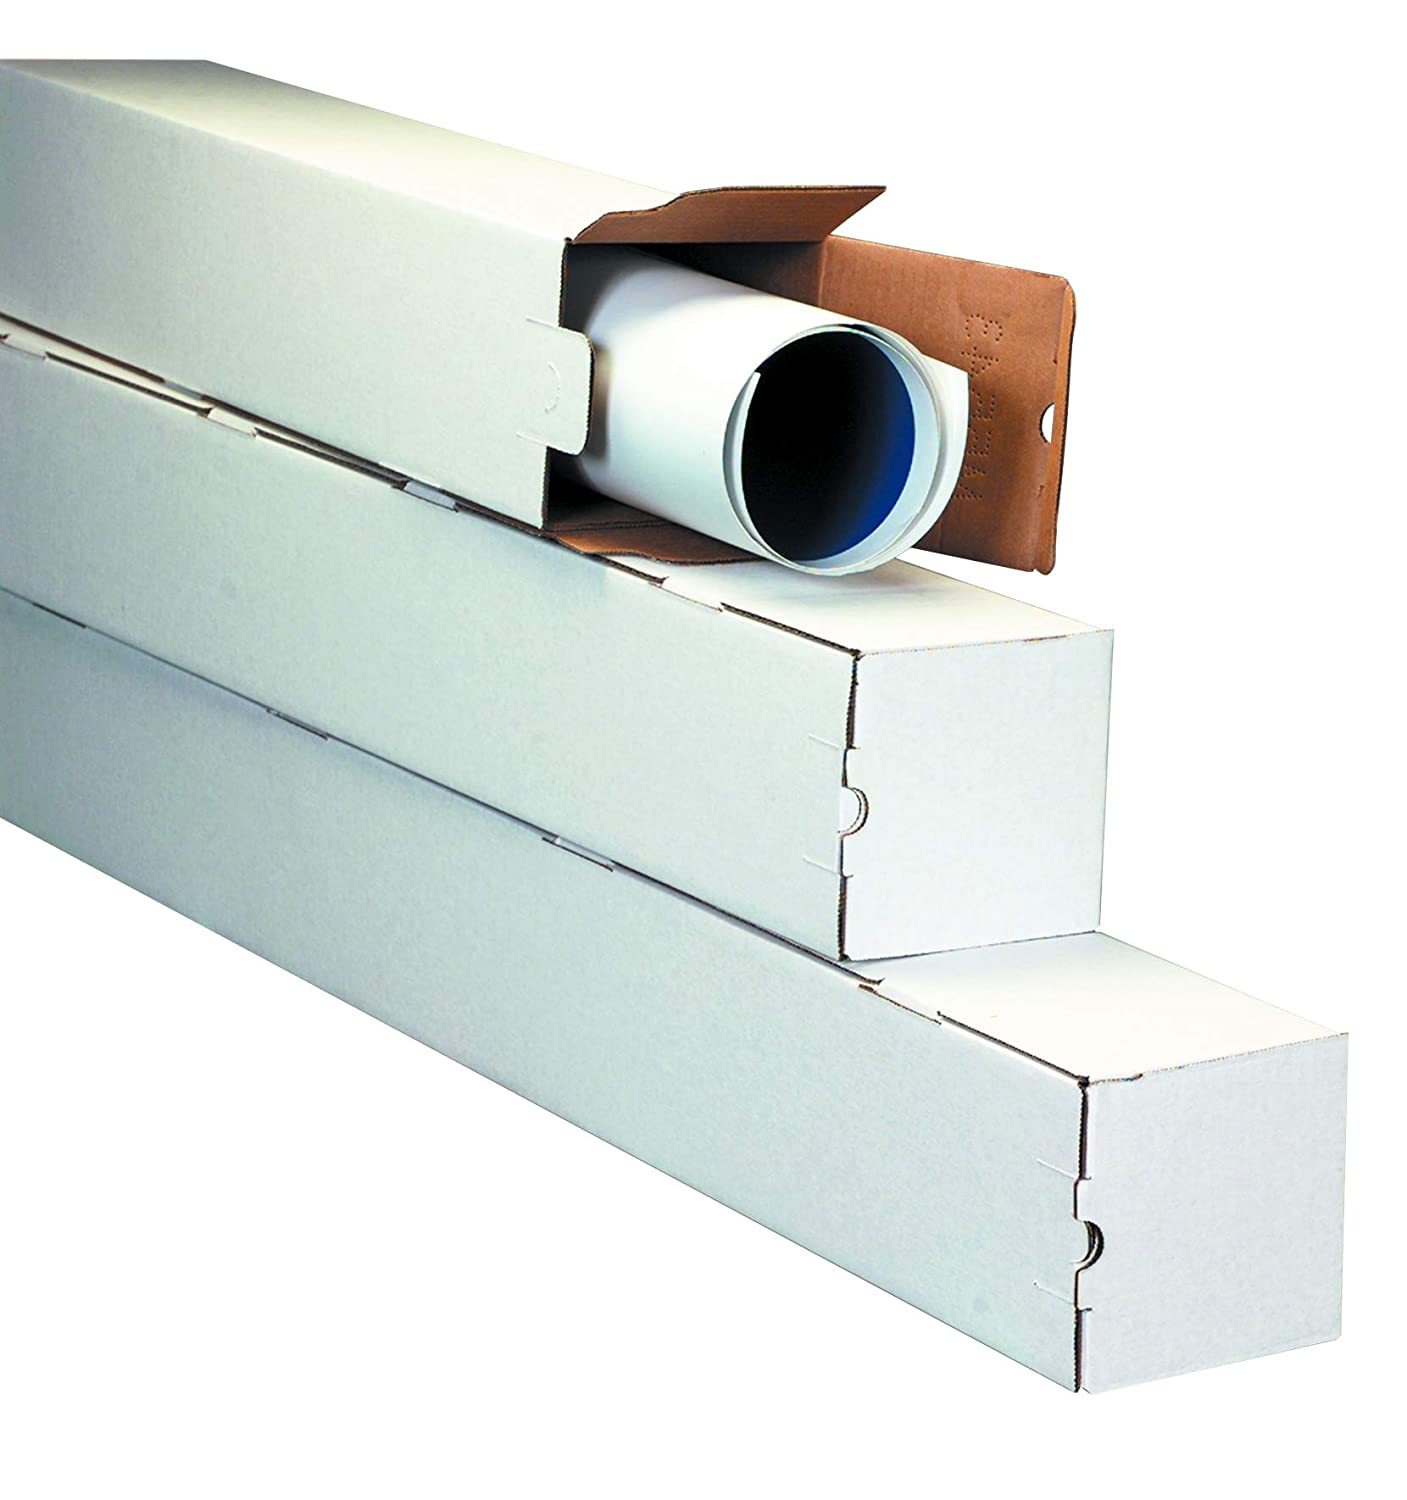 25 Length x 5 Width x 5 Height Oyster White Bundle of 25 Aviditi M5525 Corrugated Square Mailing Tube